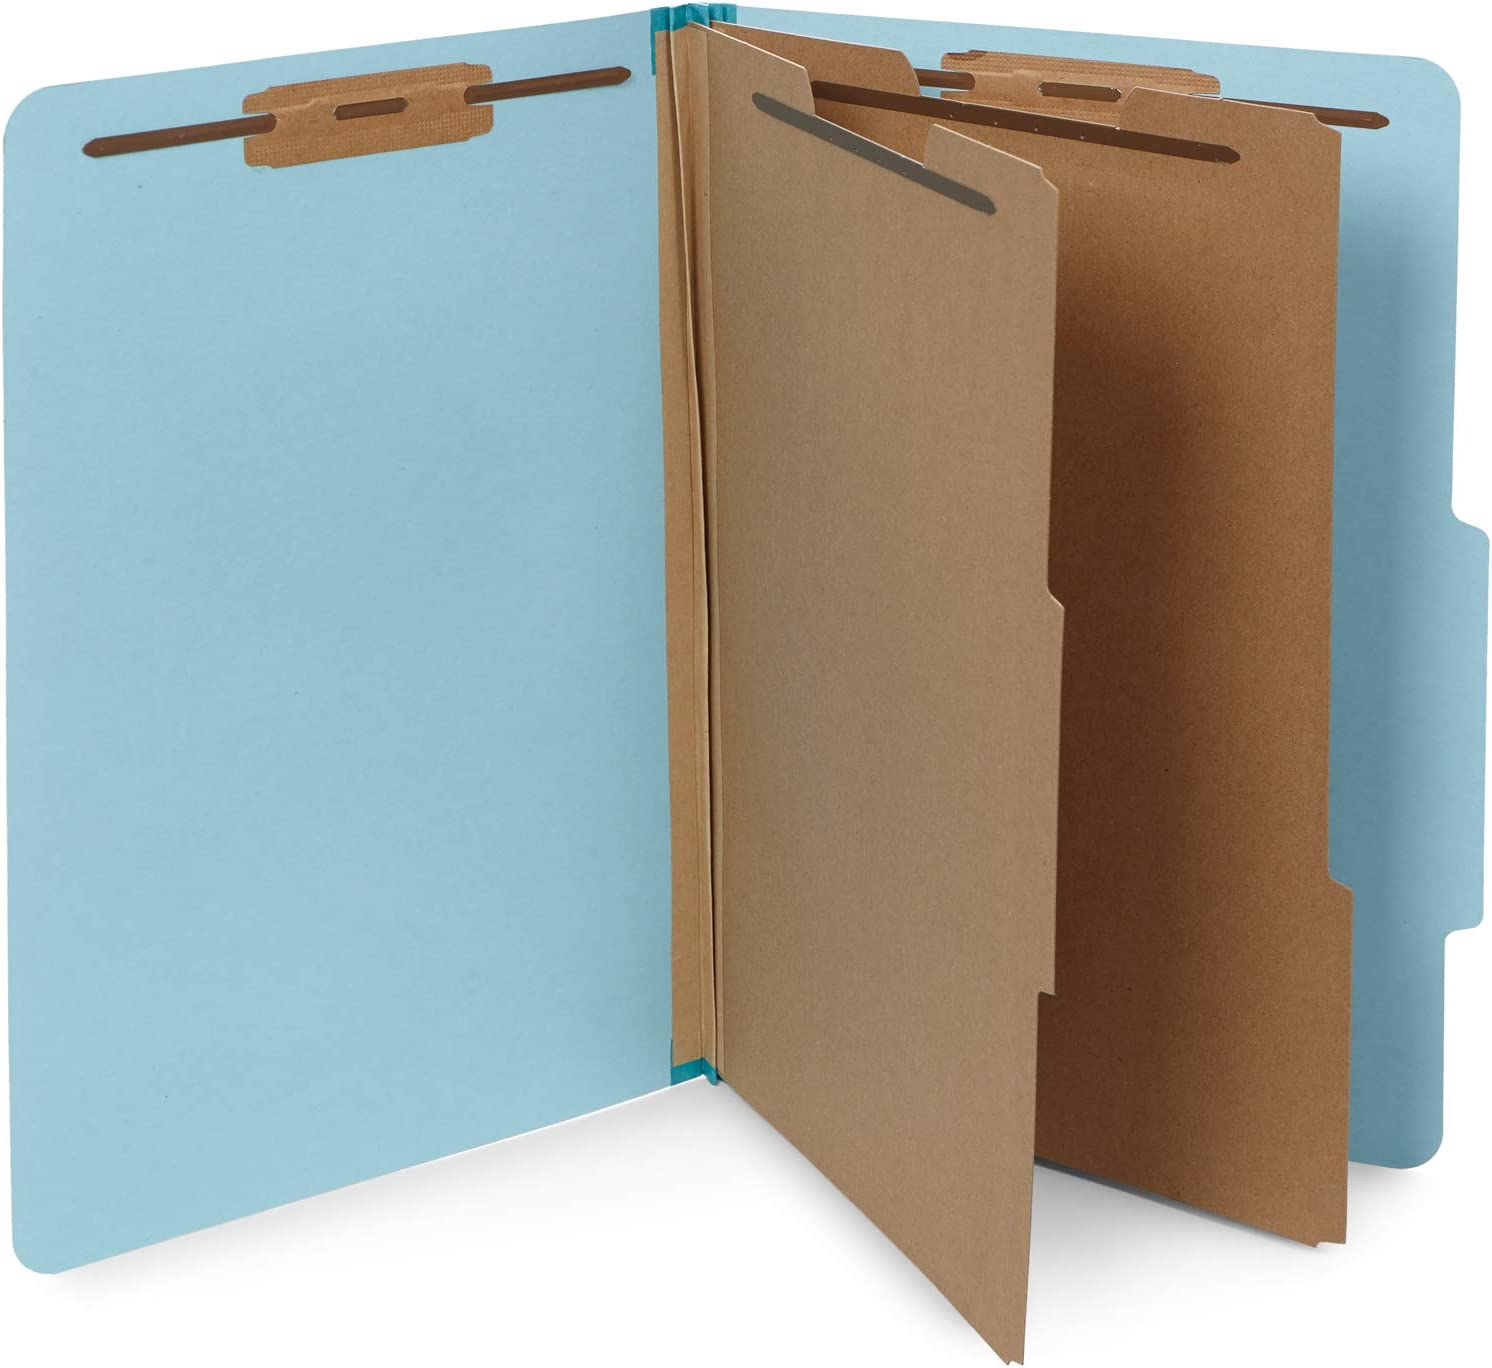 10 Blue Legal Size Classification Folders - 2 Divider 2 Inch Tyvek expansions - Durable 2 Prongs Designed to Organize Standard Law Client Files, Office Reports - Legal Size, 8 3/4 x 14 3/4, 10 Folders